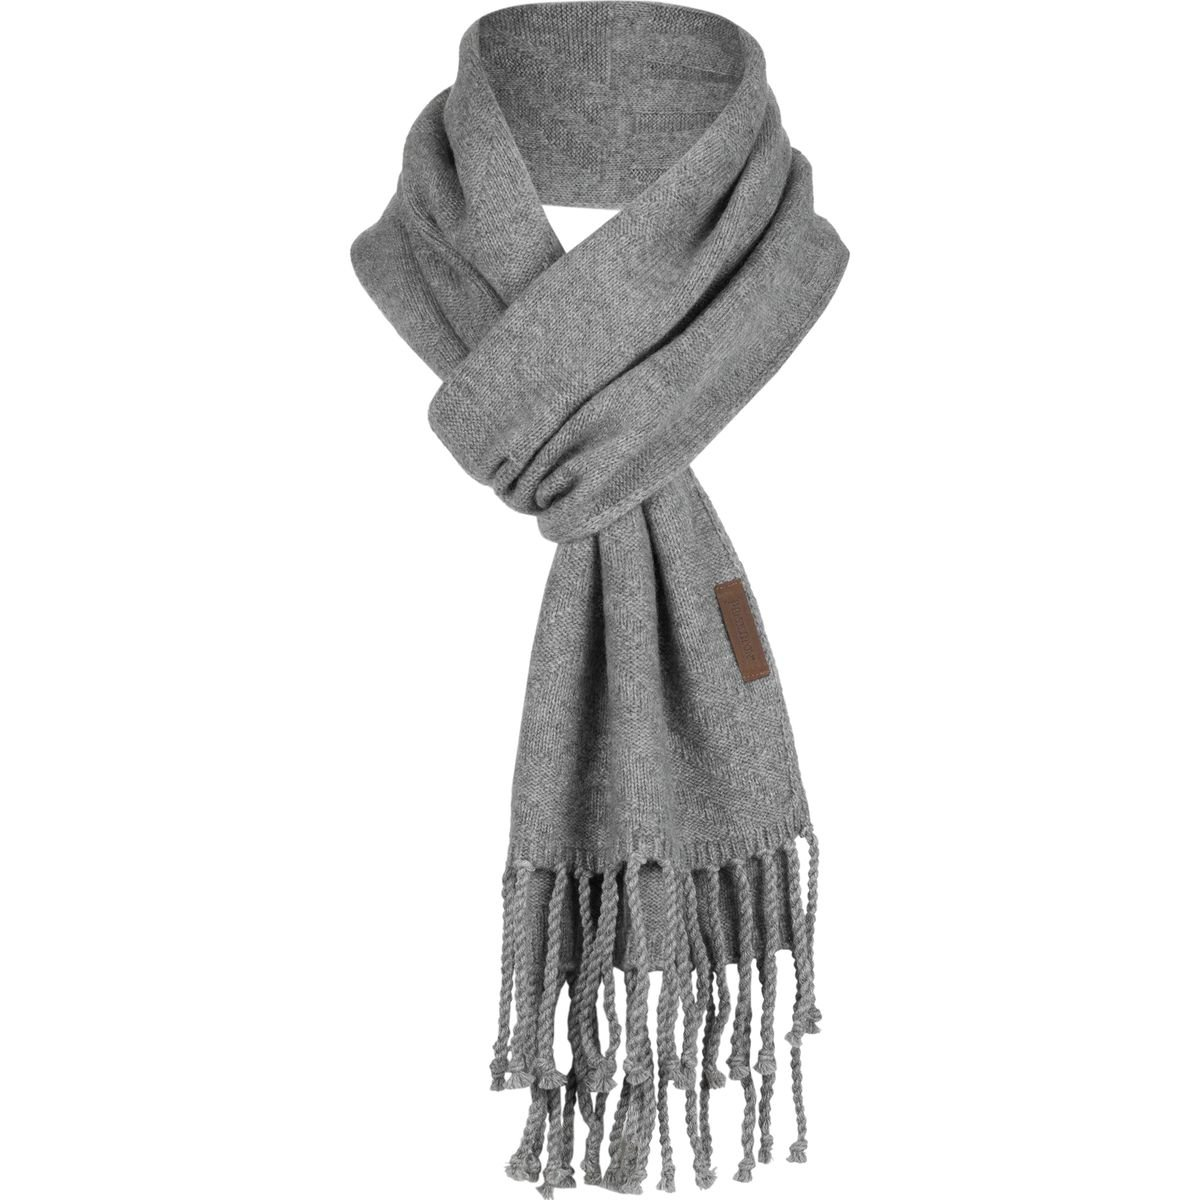 Pendleton Cashmere Scarf Soft Grey Heather, One Size